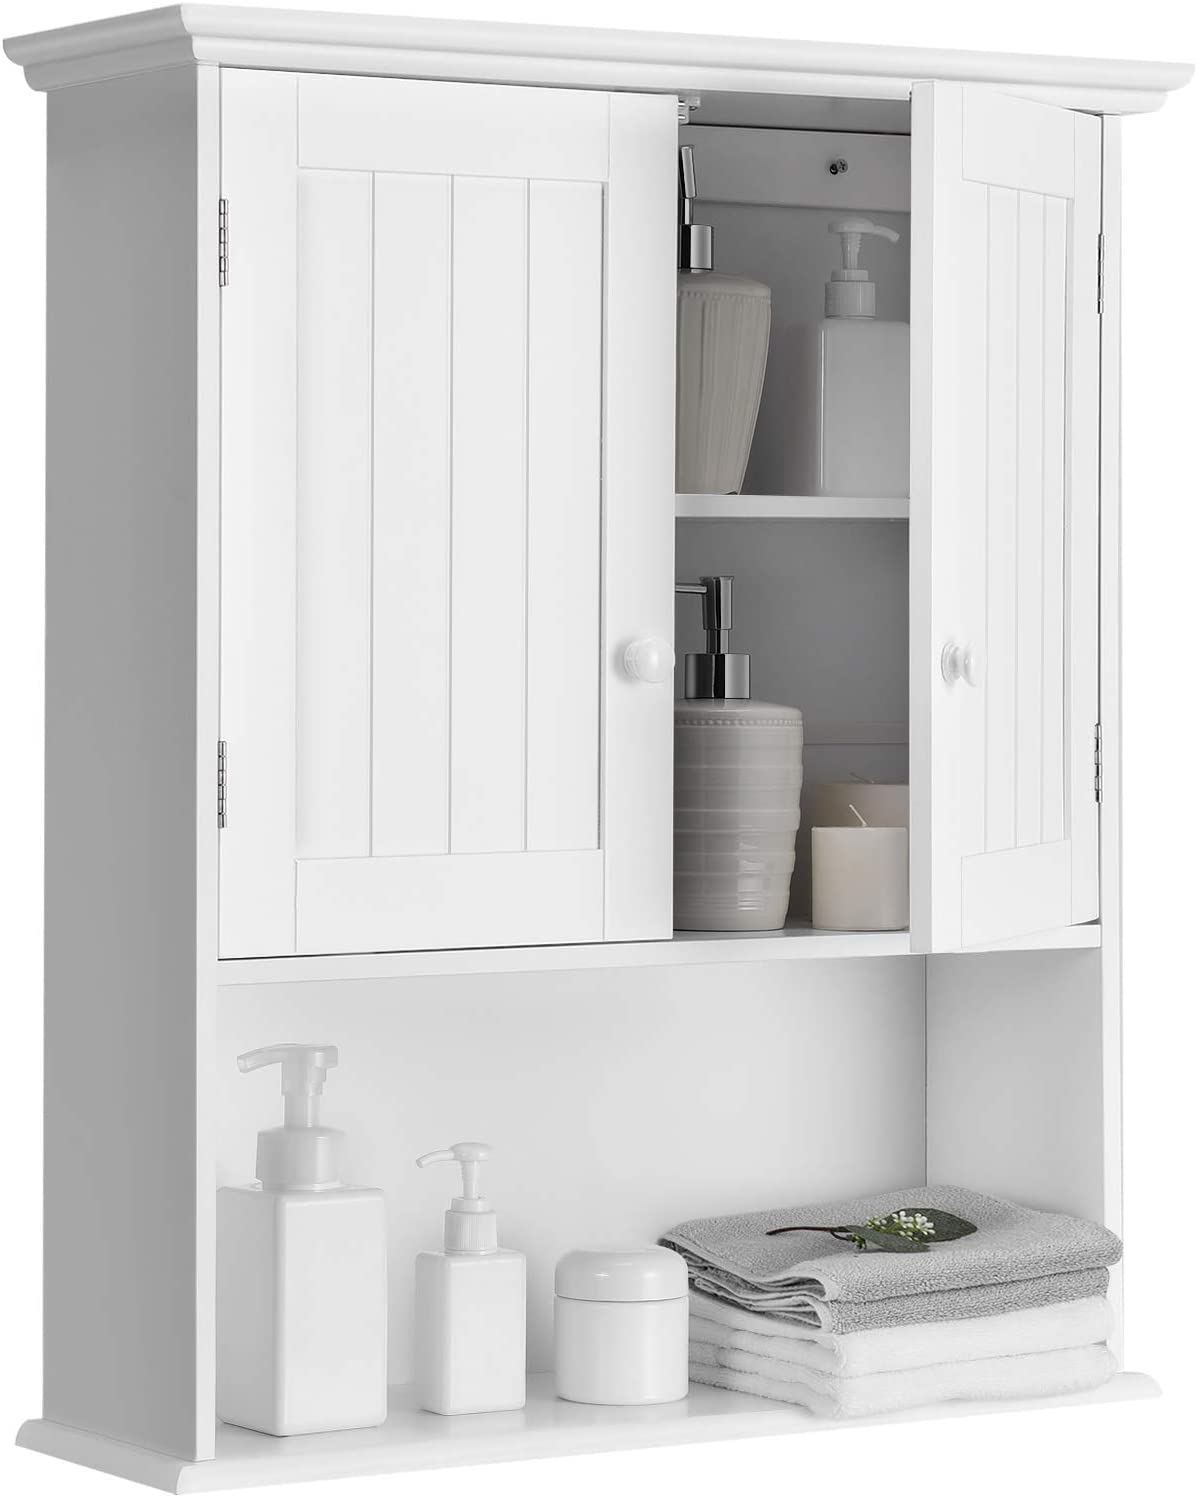 Tangkula Wall Mount Bathroom Cabinet Wooden Medicine Cabinet Storage Organizer With 2 Doors And 1 Shelf Cottage Collection Wall Cabinet White Kitchen Dining